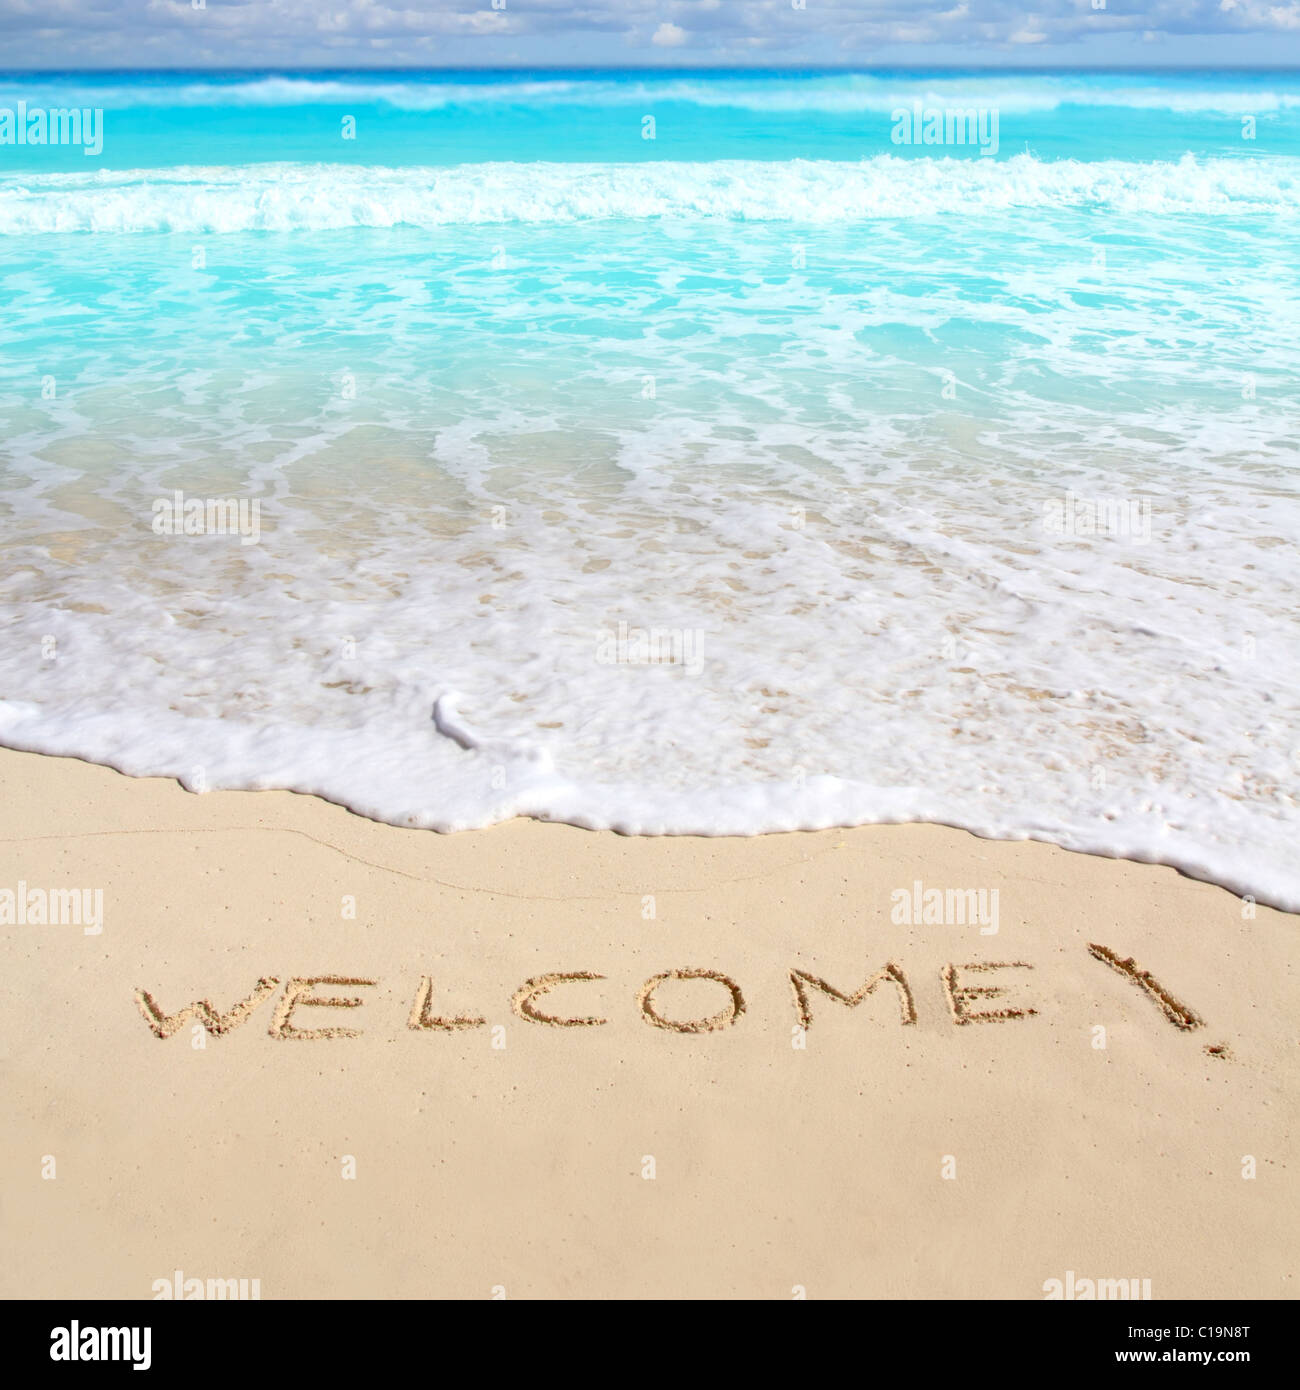 greetings welcome beach spell written on sand Caribbean tropical sea - Stock Image